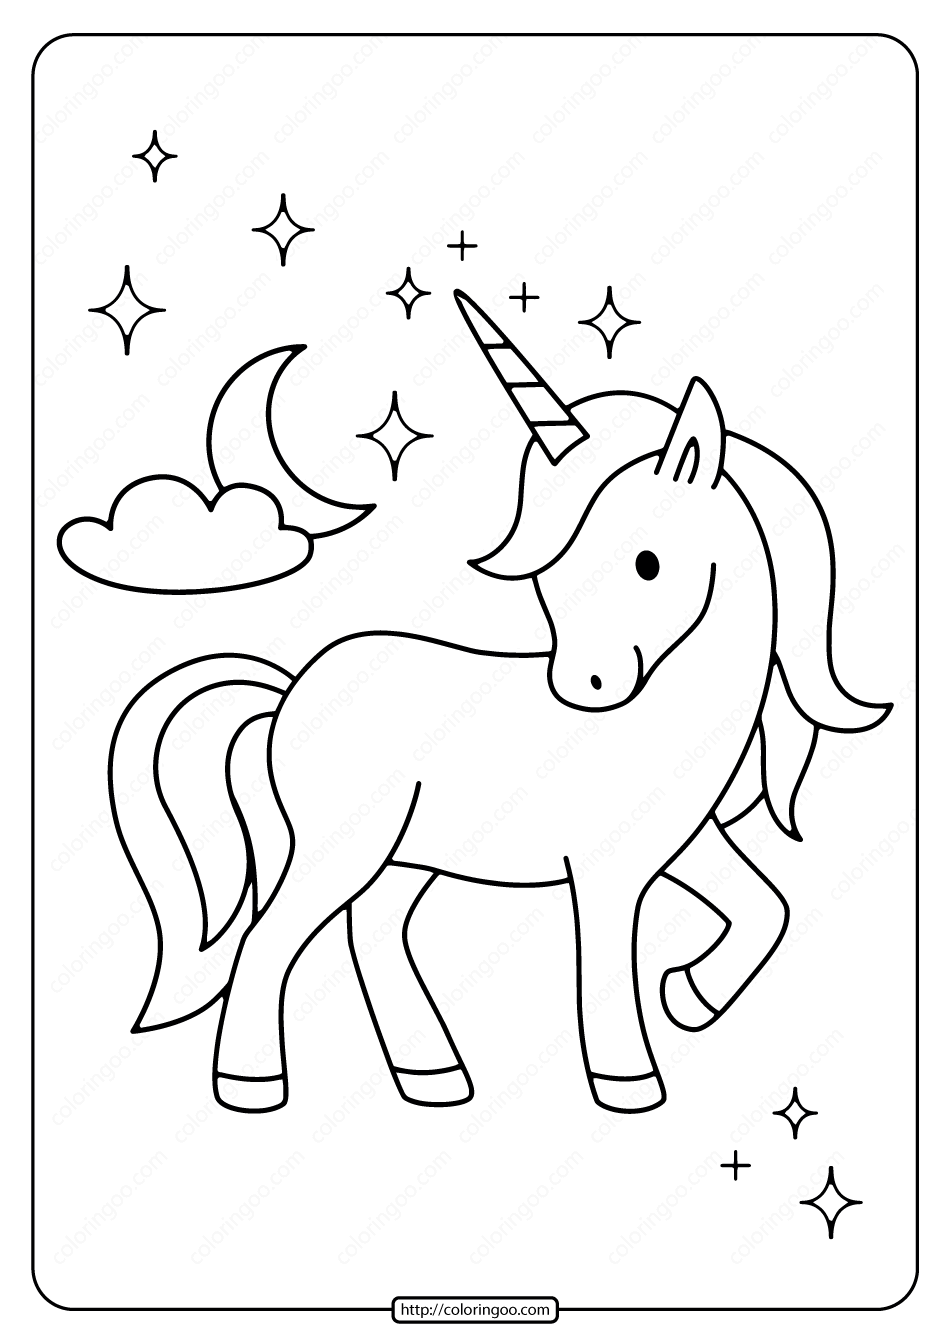 Printable Unicorn With The Moon Coloring Page Moon Coloring Pages Unicorn Coloring Pages Unicorn Painting